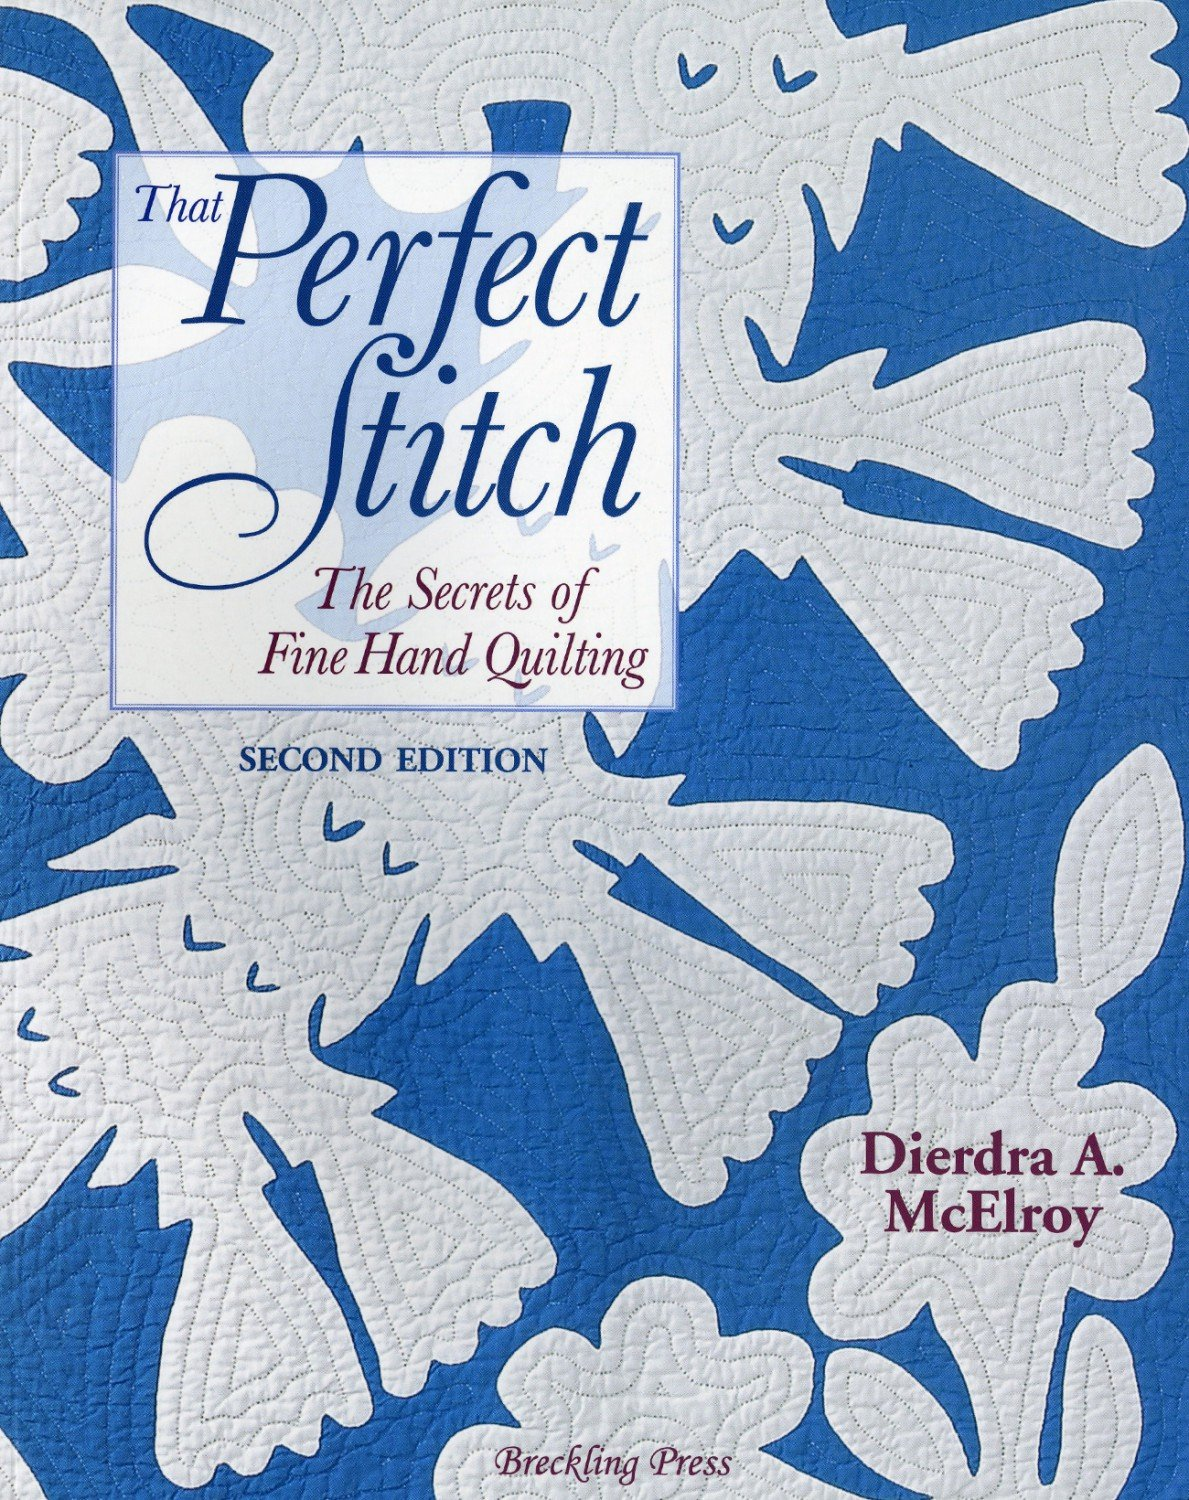 That Perfect Stitch - BP27-2  - MAY BE RESTOCKED UPON REQUEST